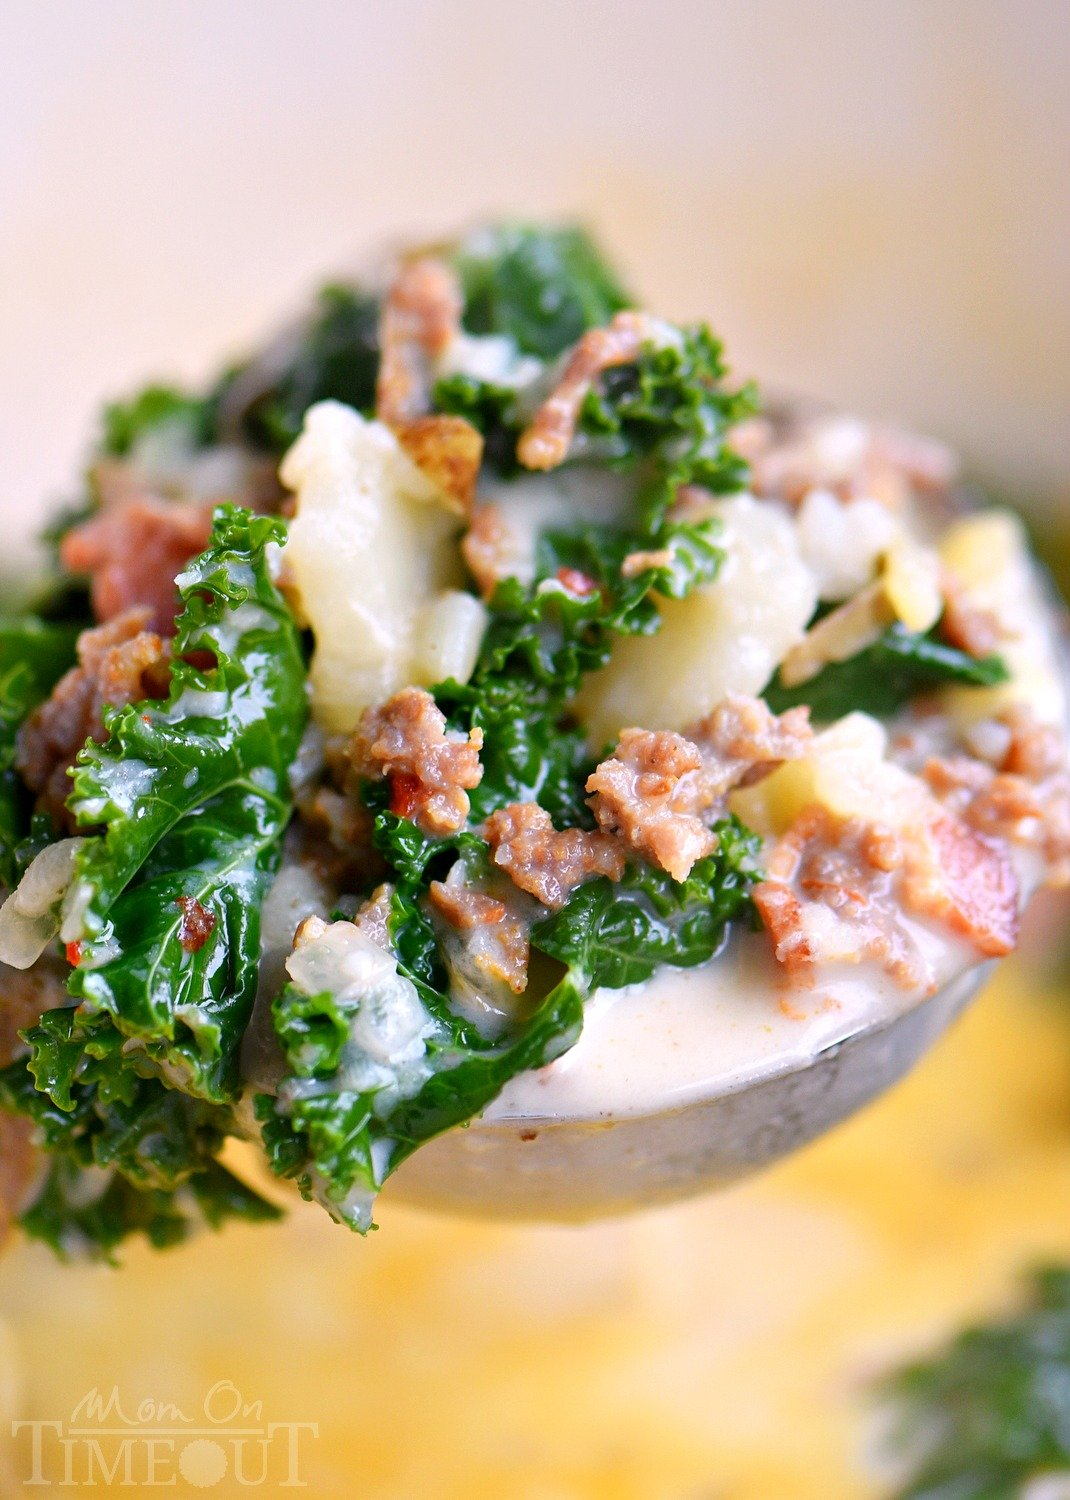 zuppa toscana soup in ladle with kale and potatoes